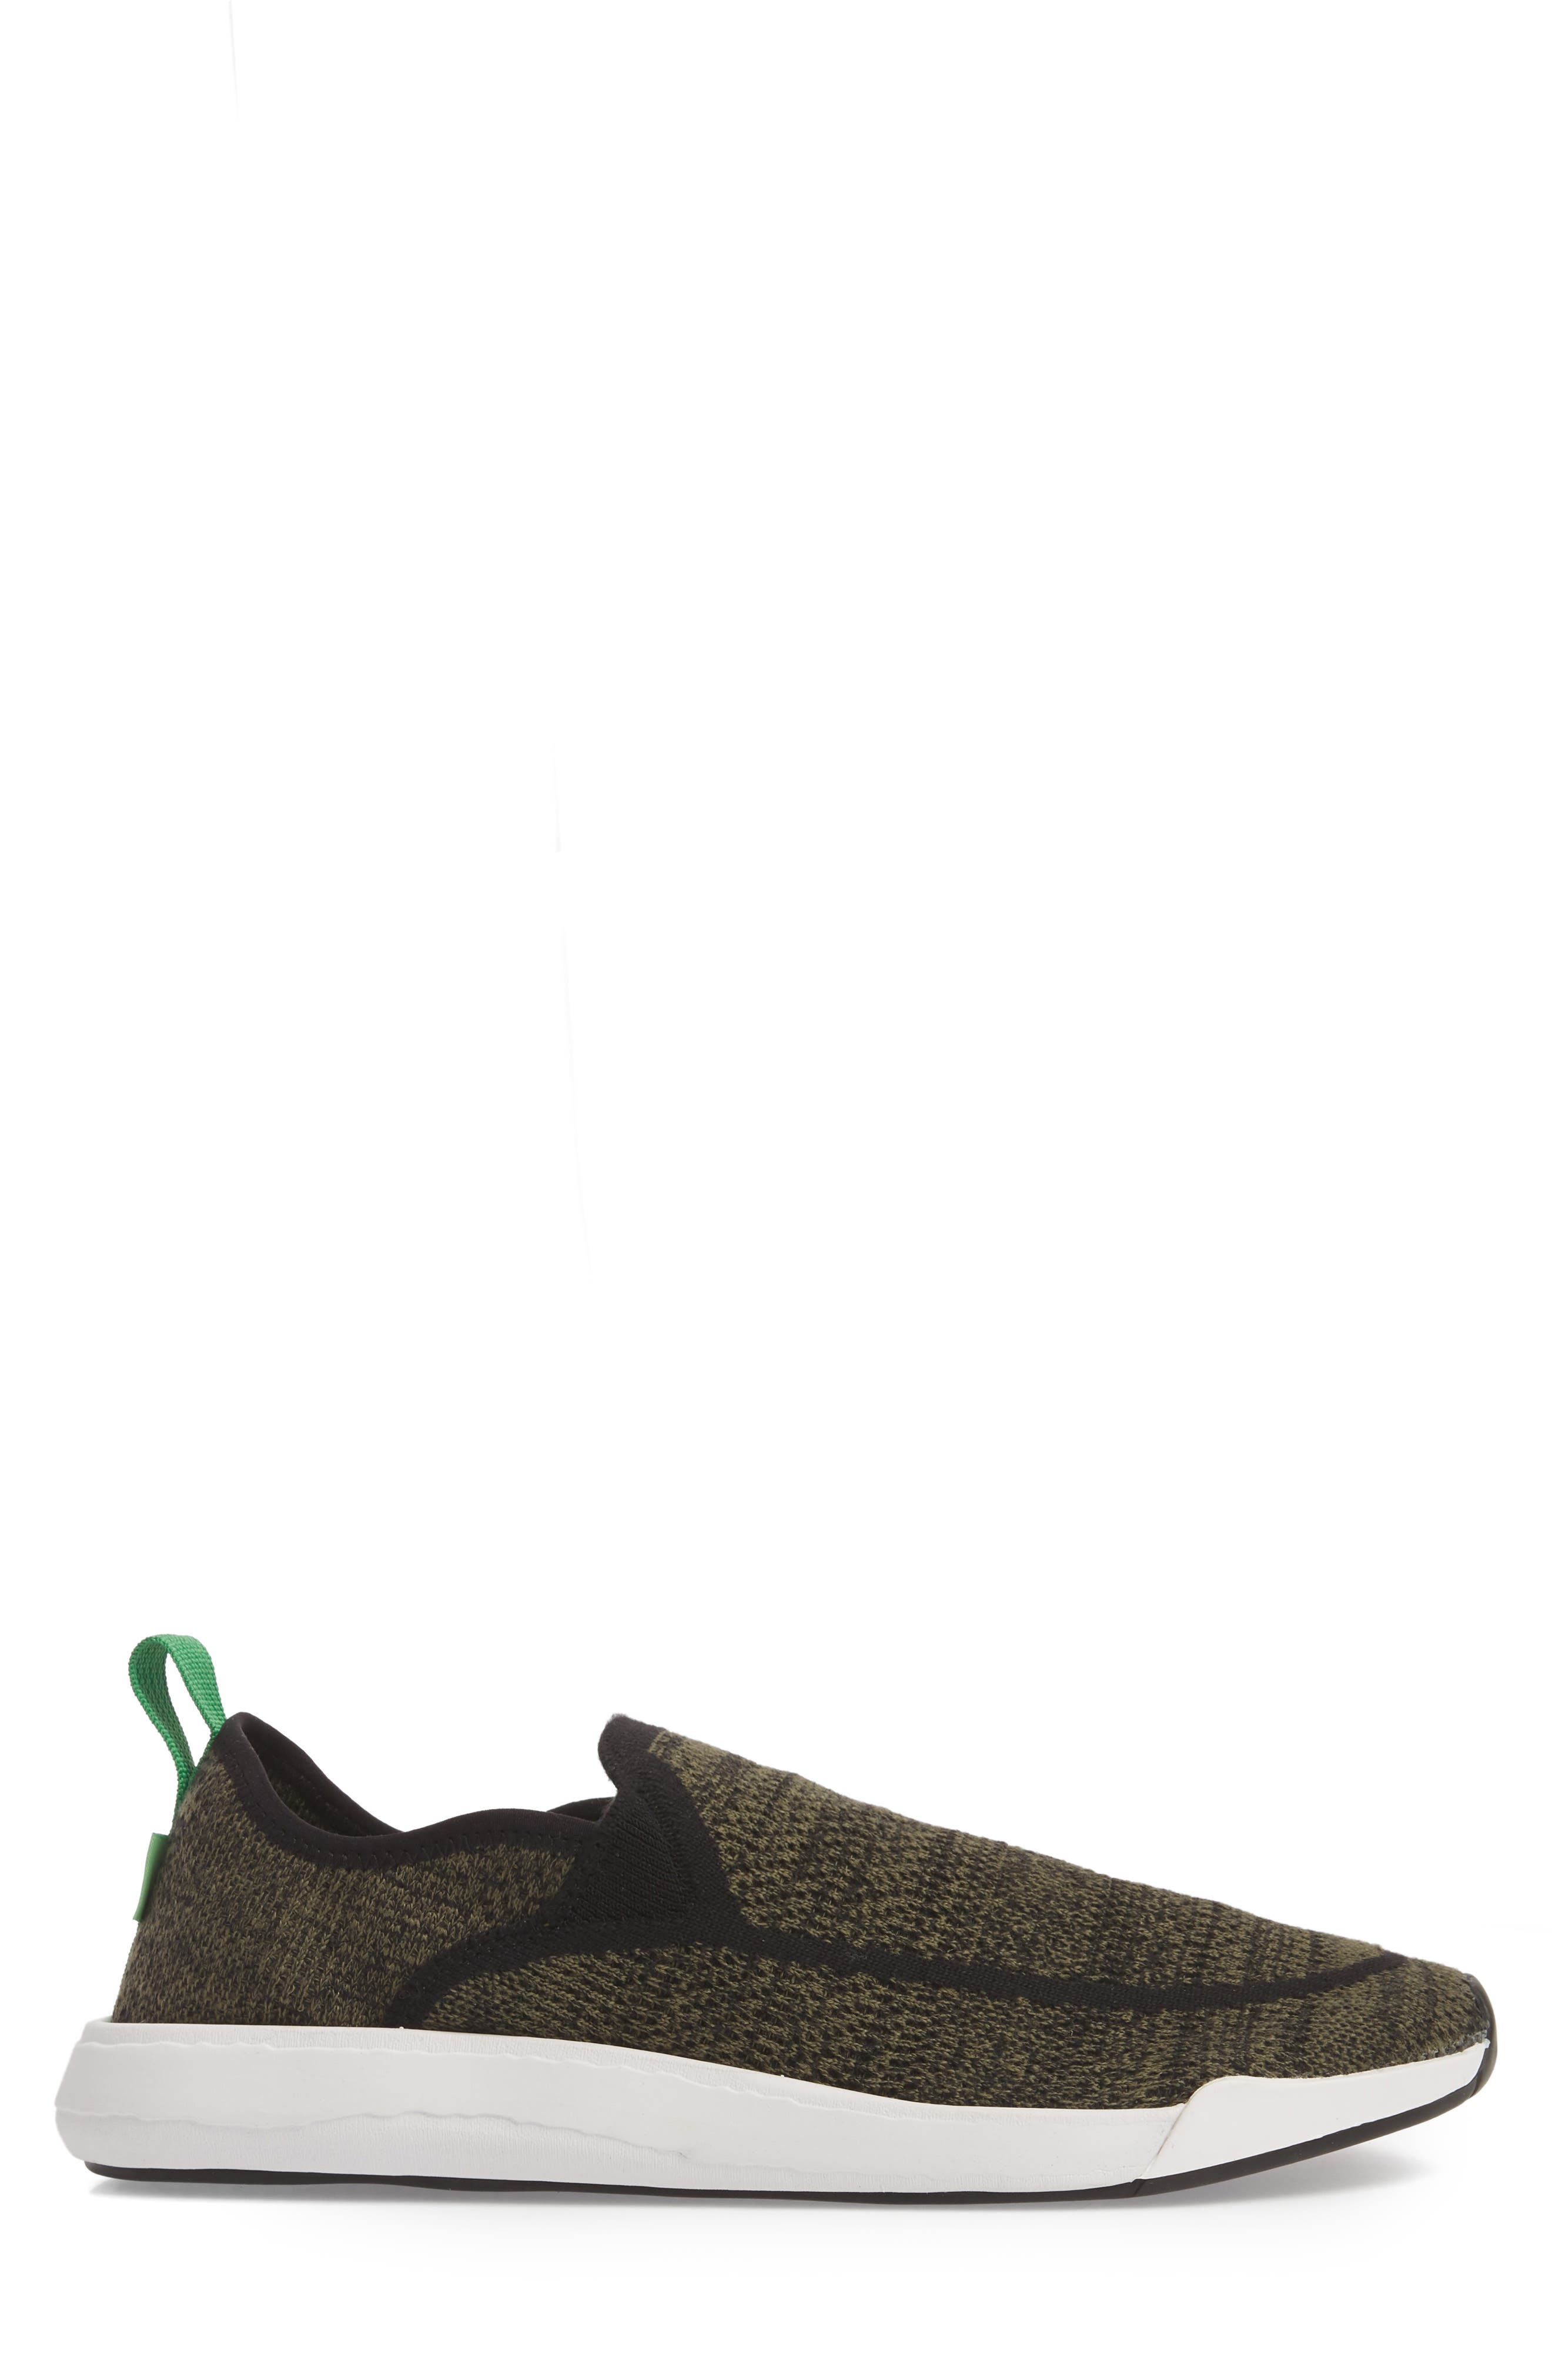 Chiba Quest Knit Slip-On Sneaker,                             Alternate thumbnail 3, color,                             OLIVE